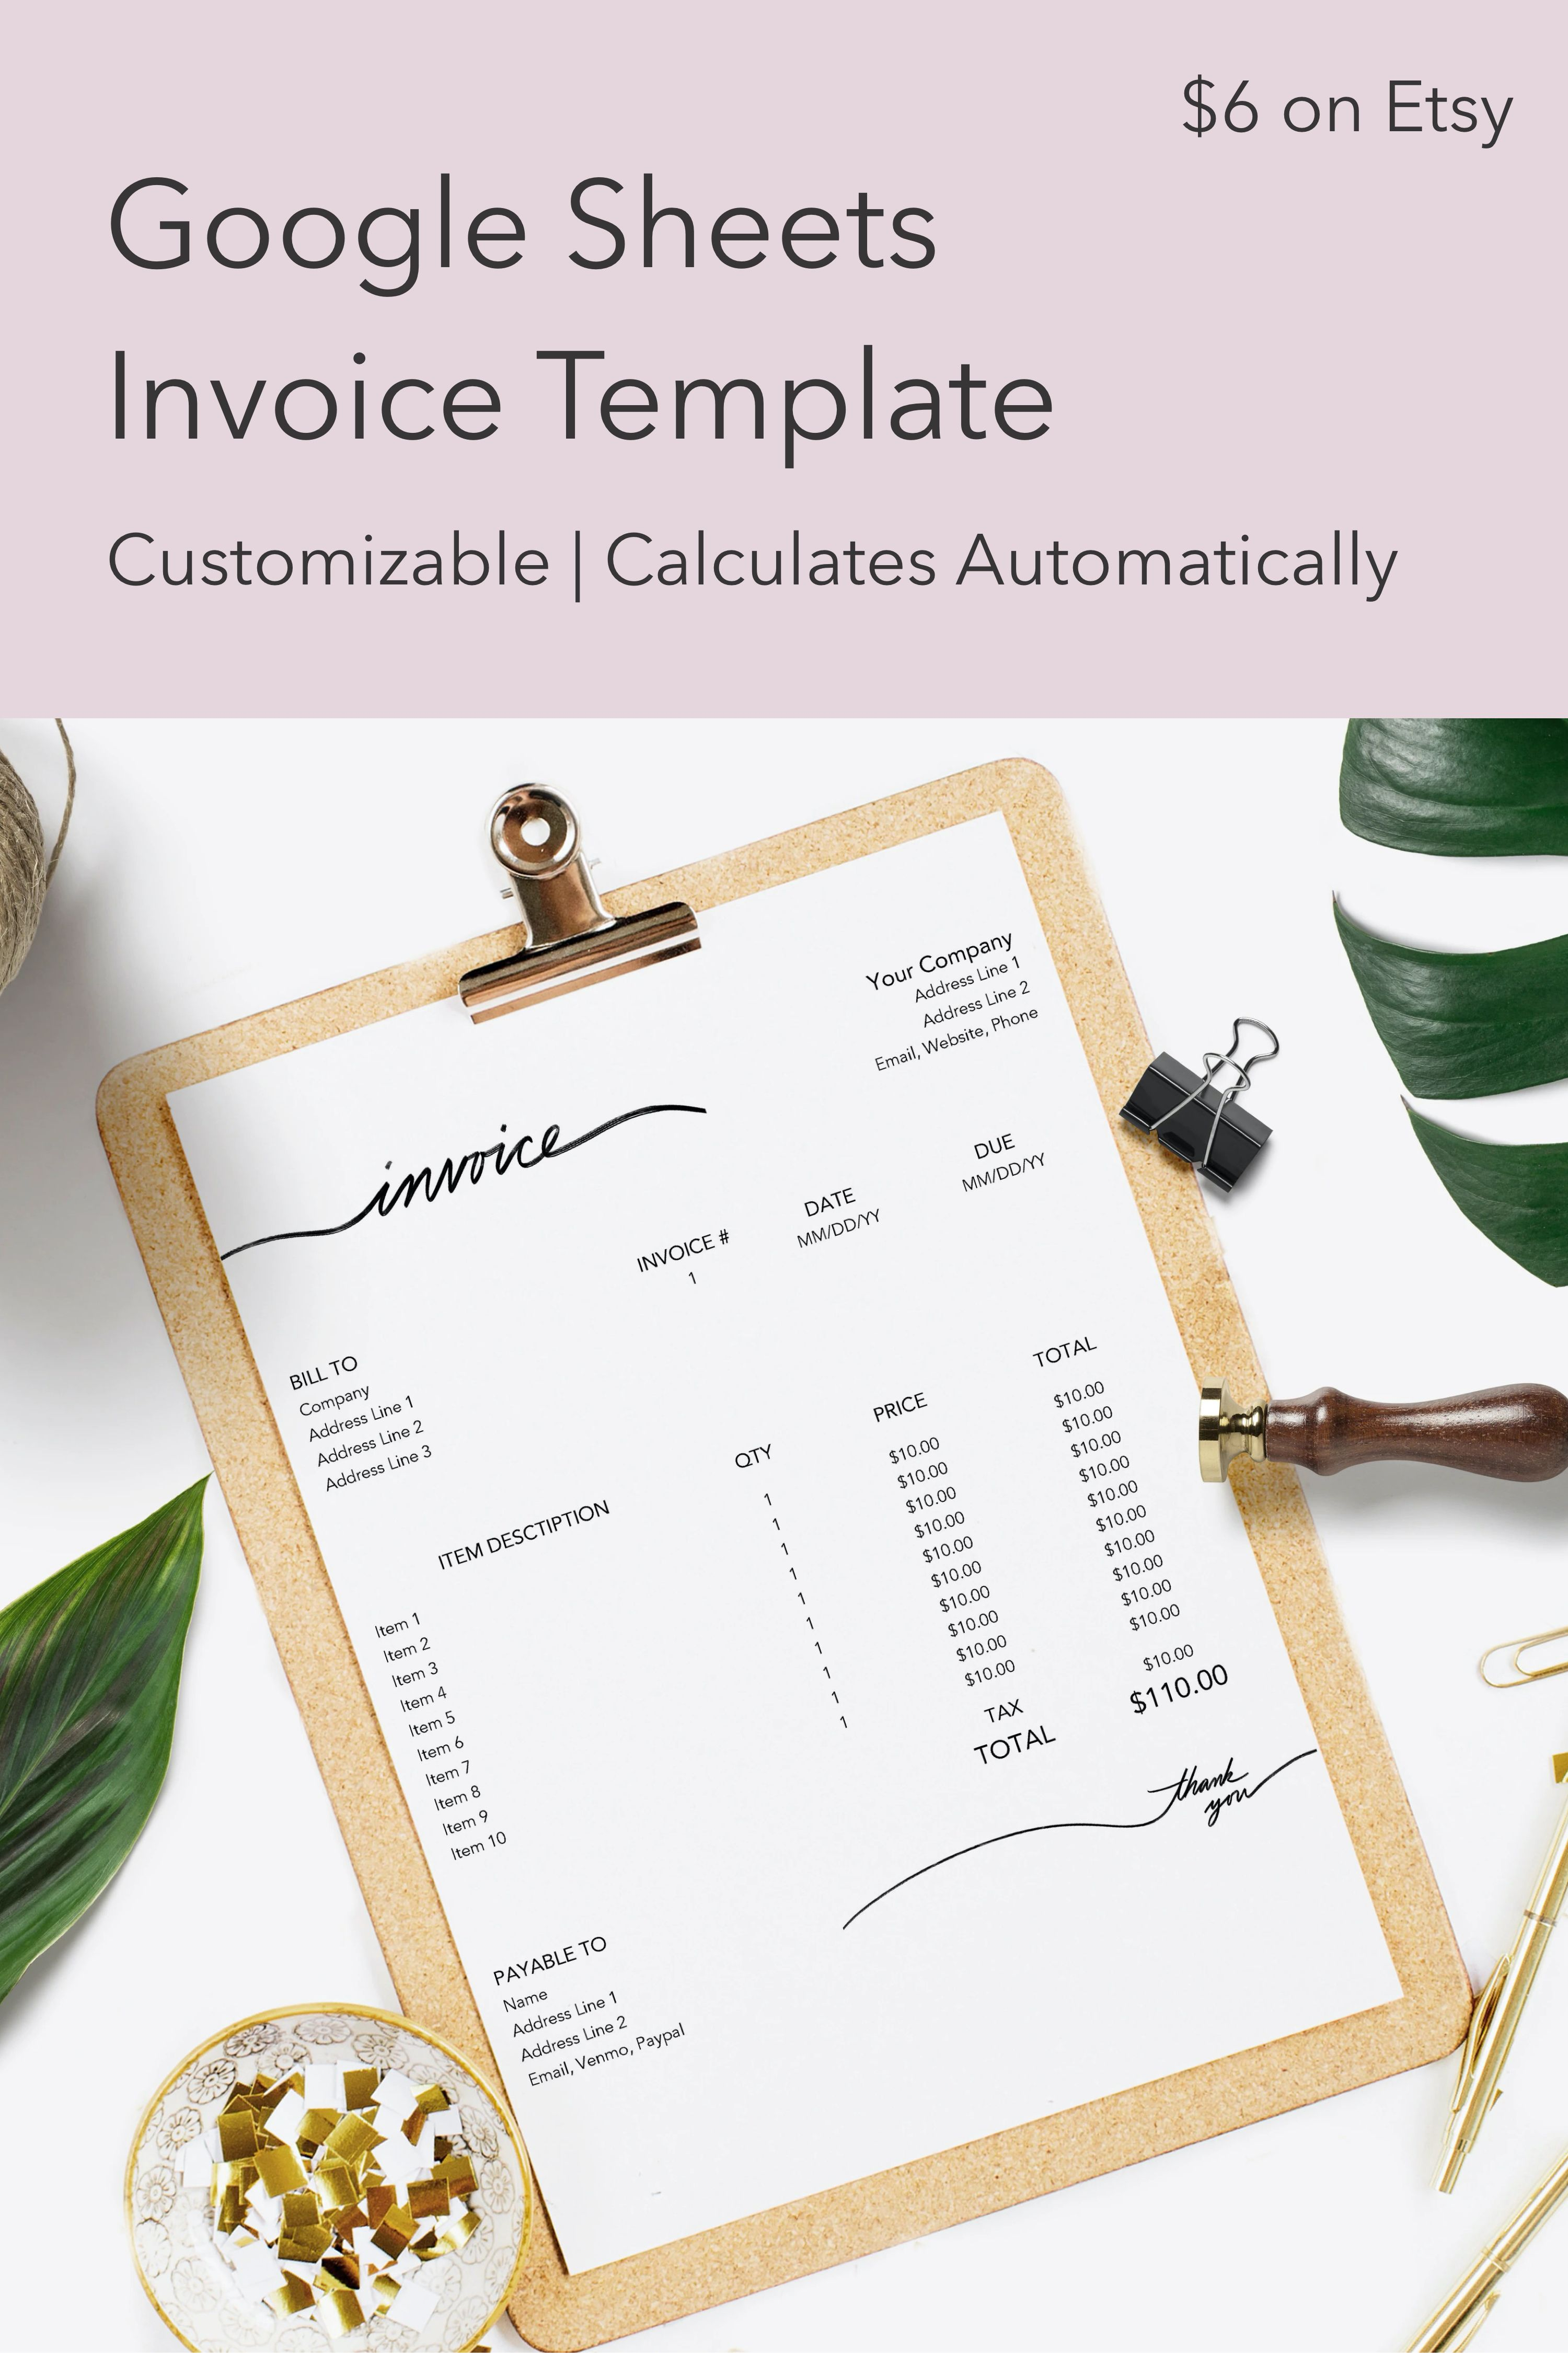 Invoice For Google Sheets Business Freelance Photography Etsy In 2021 Invoice Template Photography Invoice Freelance Invoice